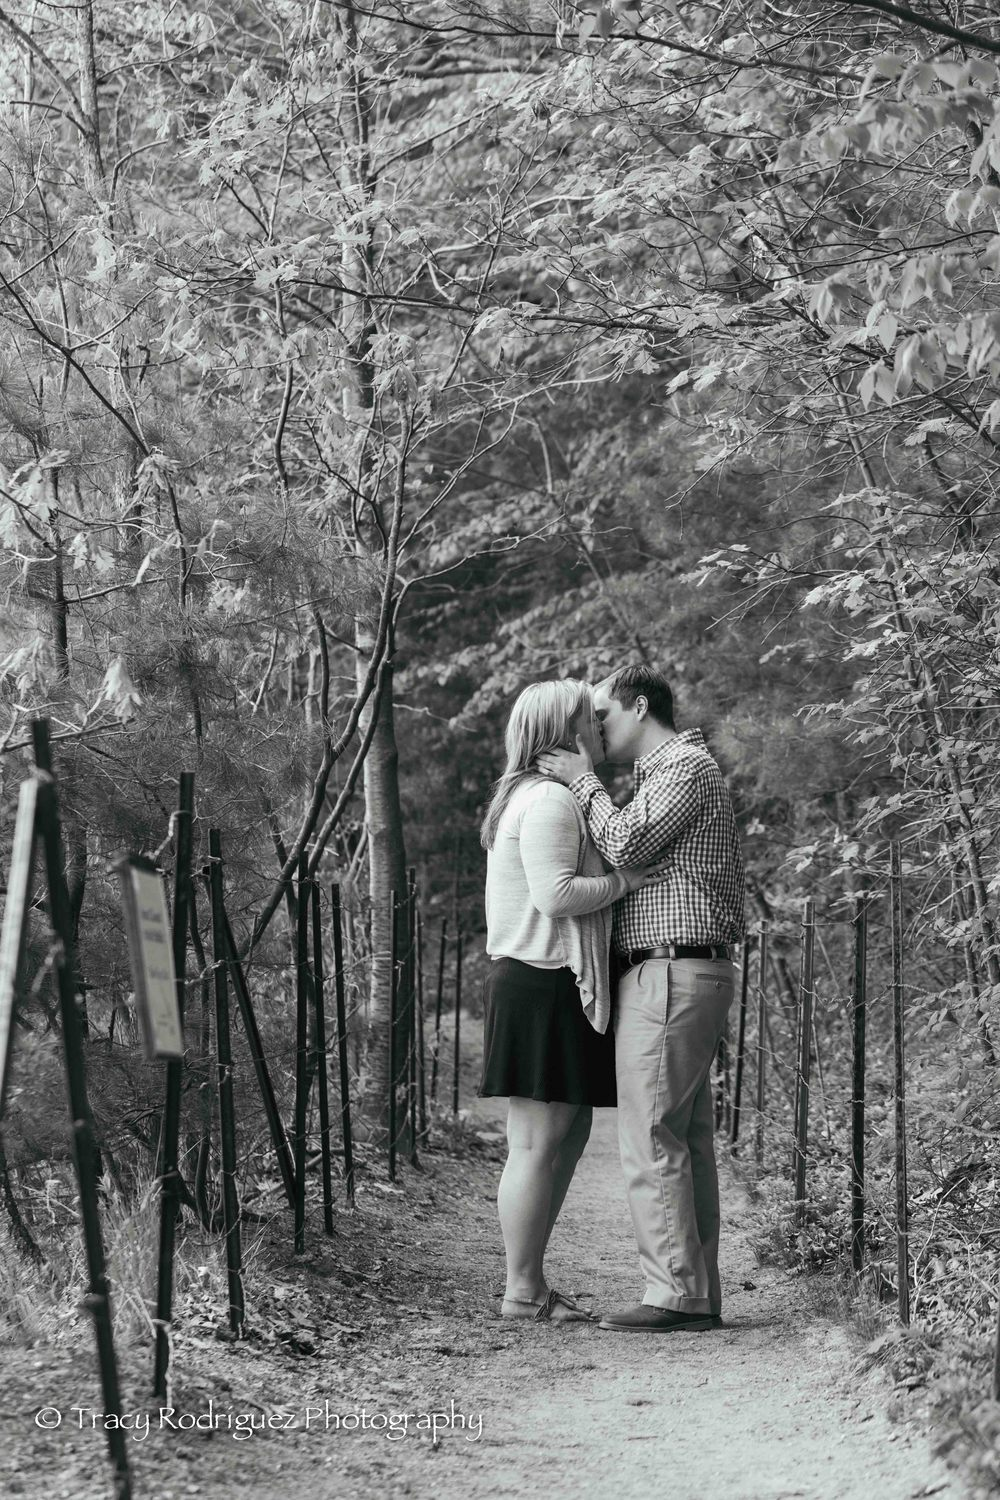 TracyRodriguezPhotography-Engagement-LowRes-13.jpg